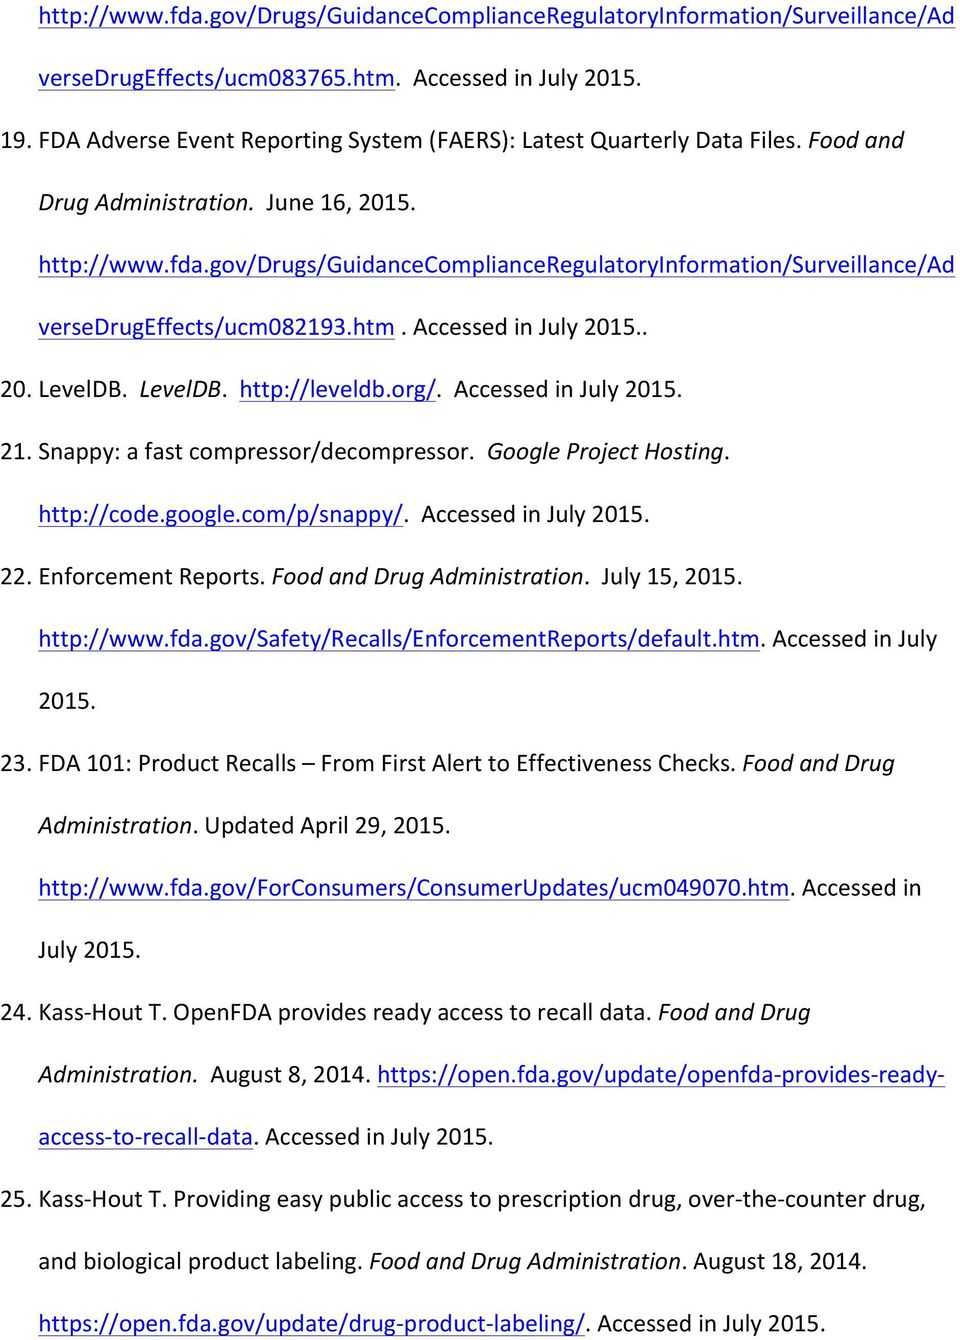 org/. 21. Snappy: a fast compressor/decompressor. Google Project Hosting. http://code.google.com/p/snappy/. 22. Enforcement Reports. Food and Drug Administration. July 15, 2015. http://www.fda.